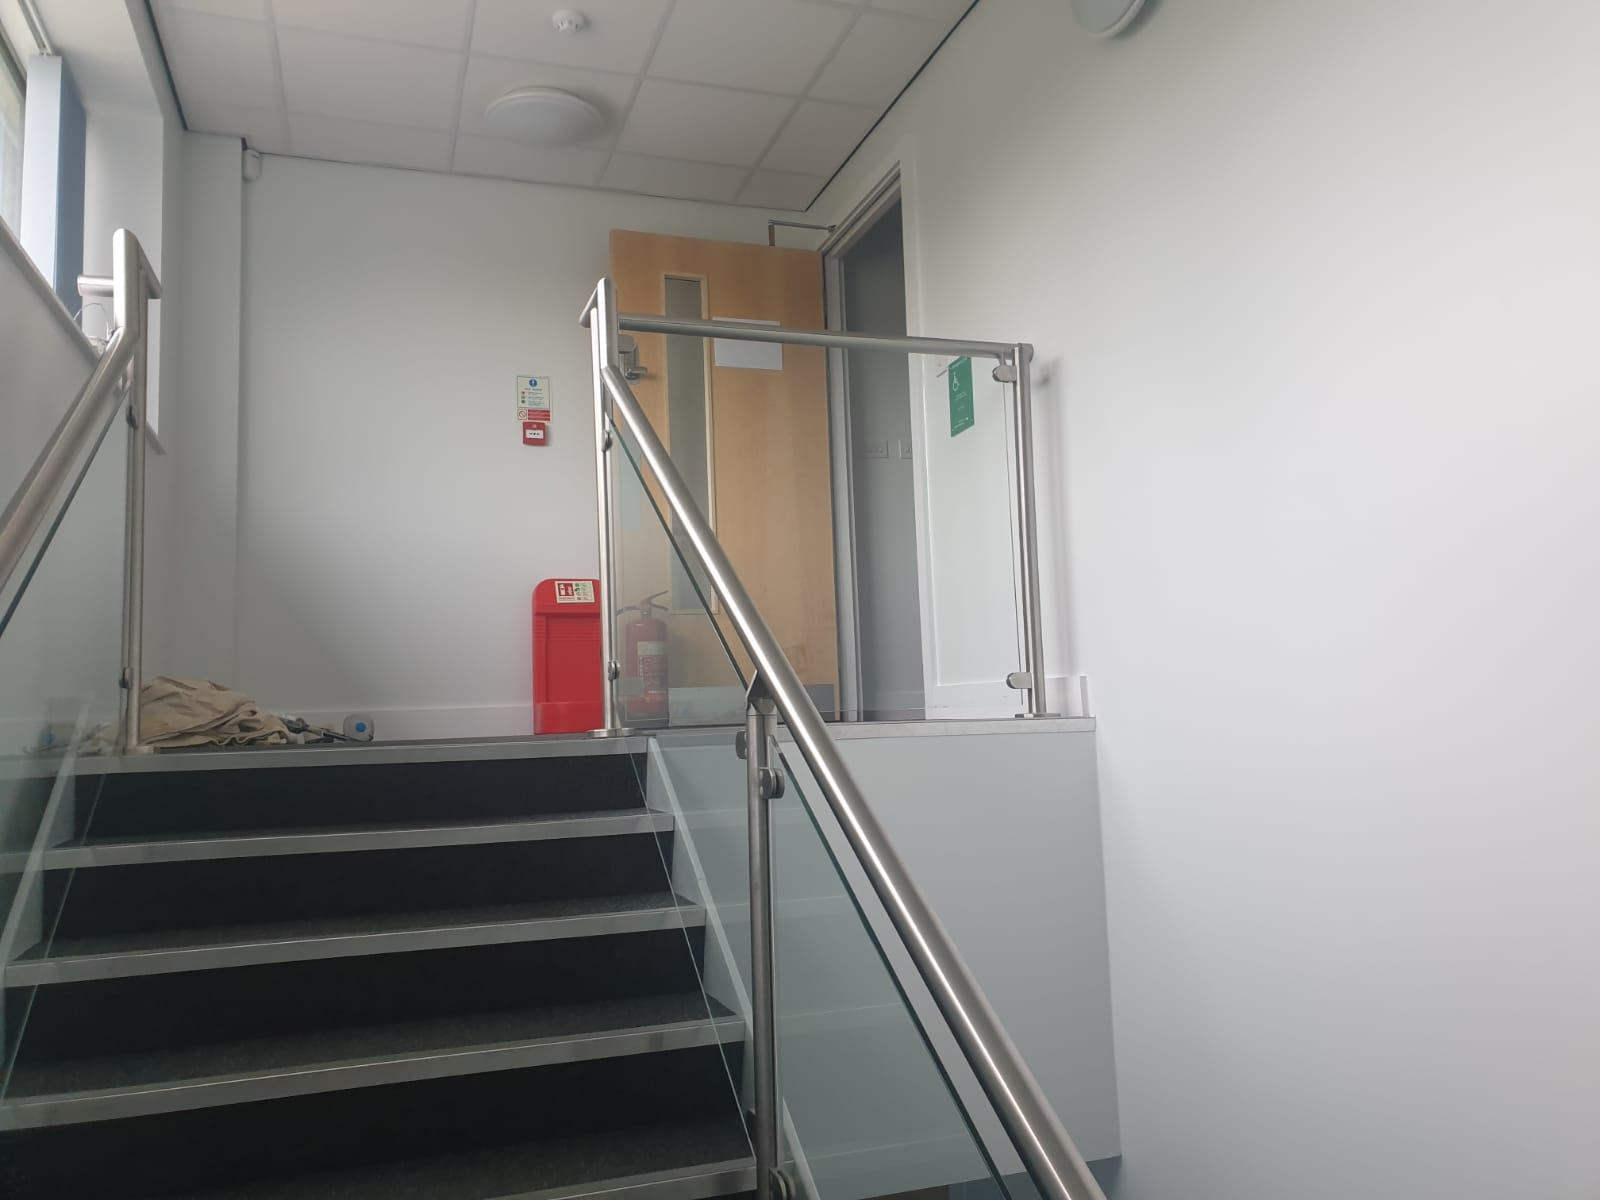 Business Offices, Reception, Stairways and Halls